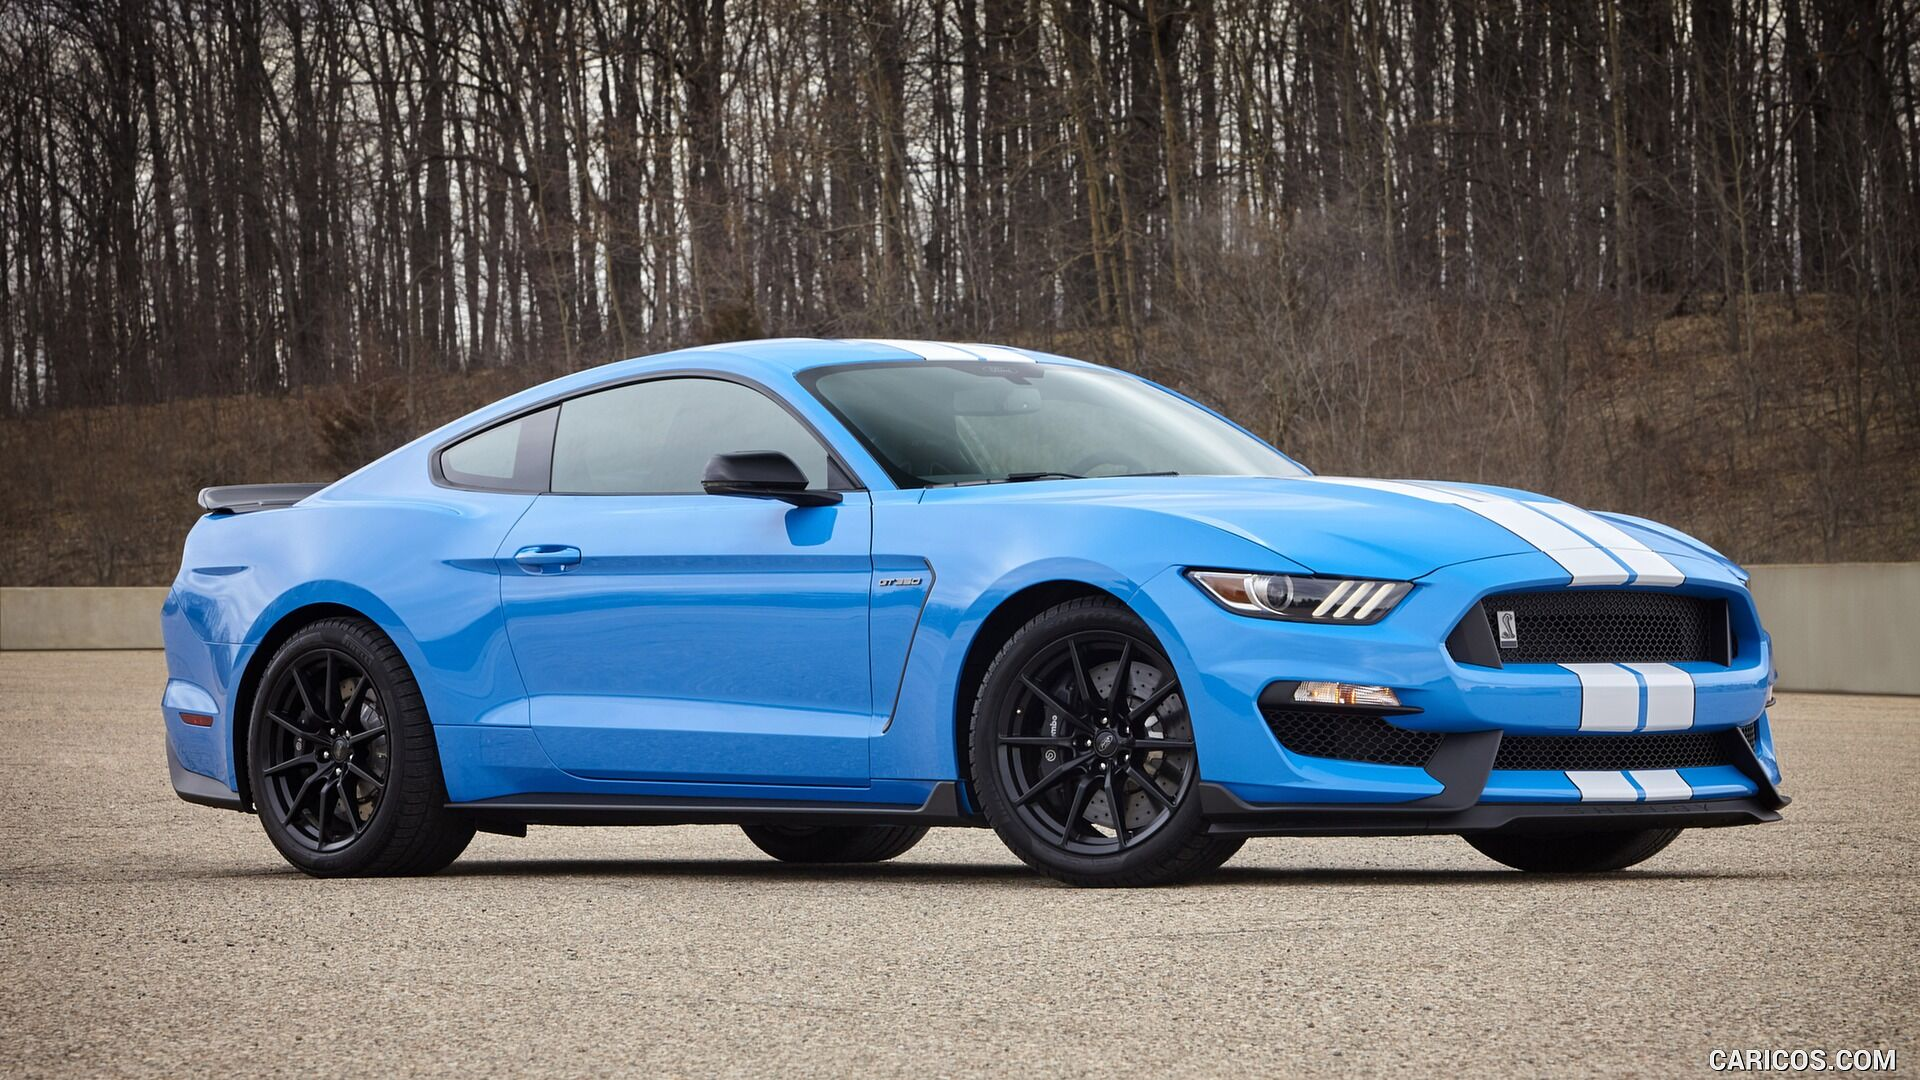 What Is The Grabber Blue Mustang? - What Is The Grabber Blue Mustang?